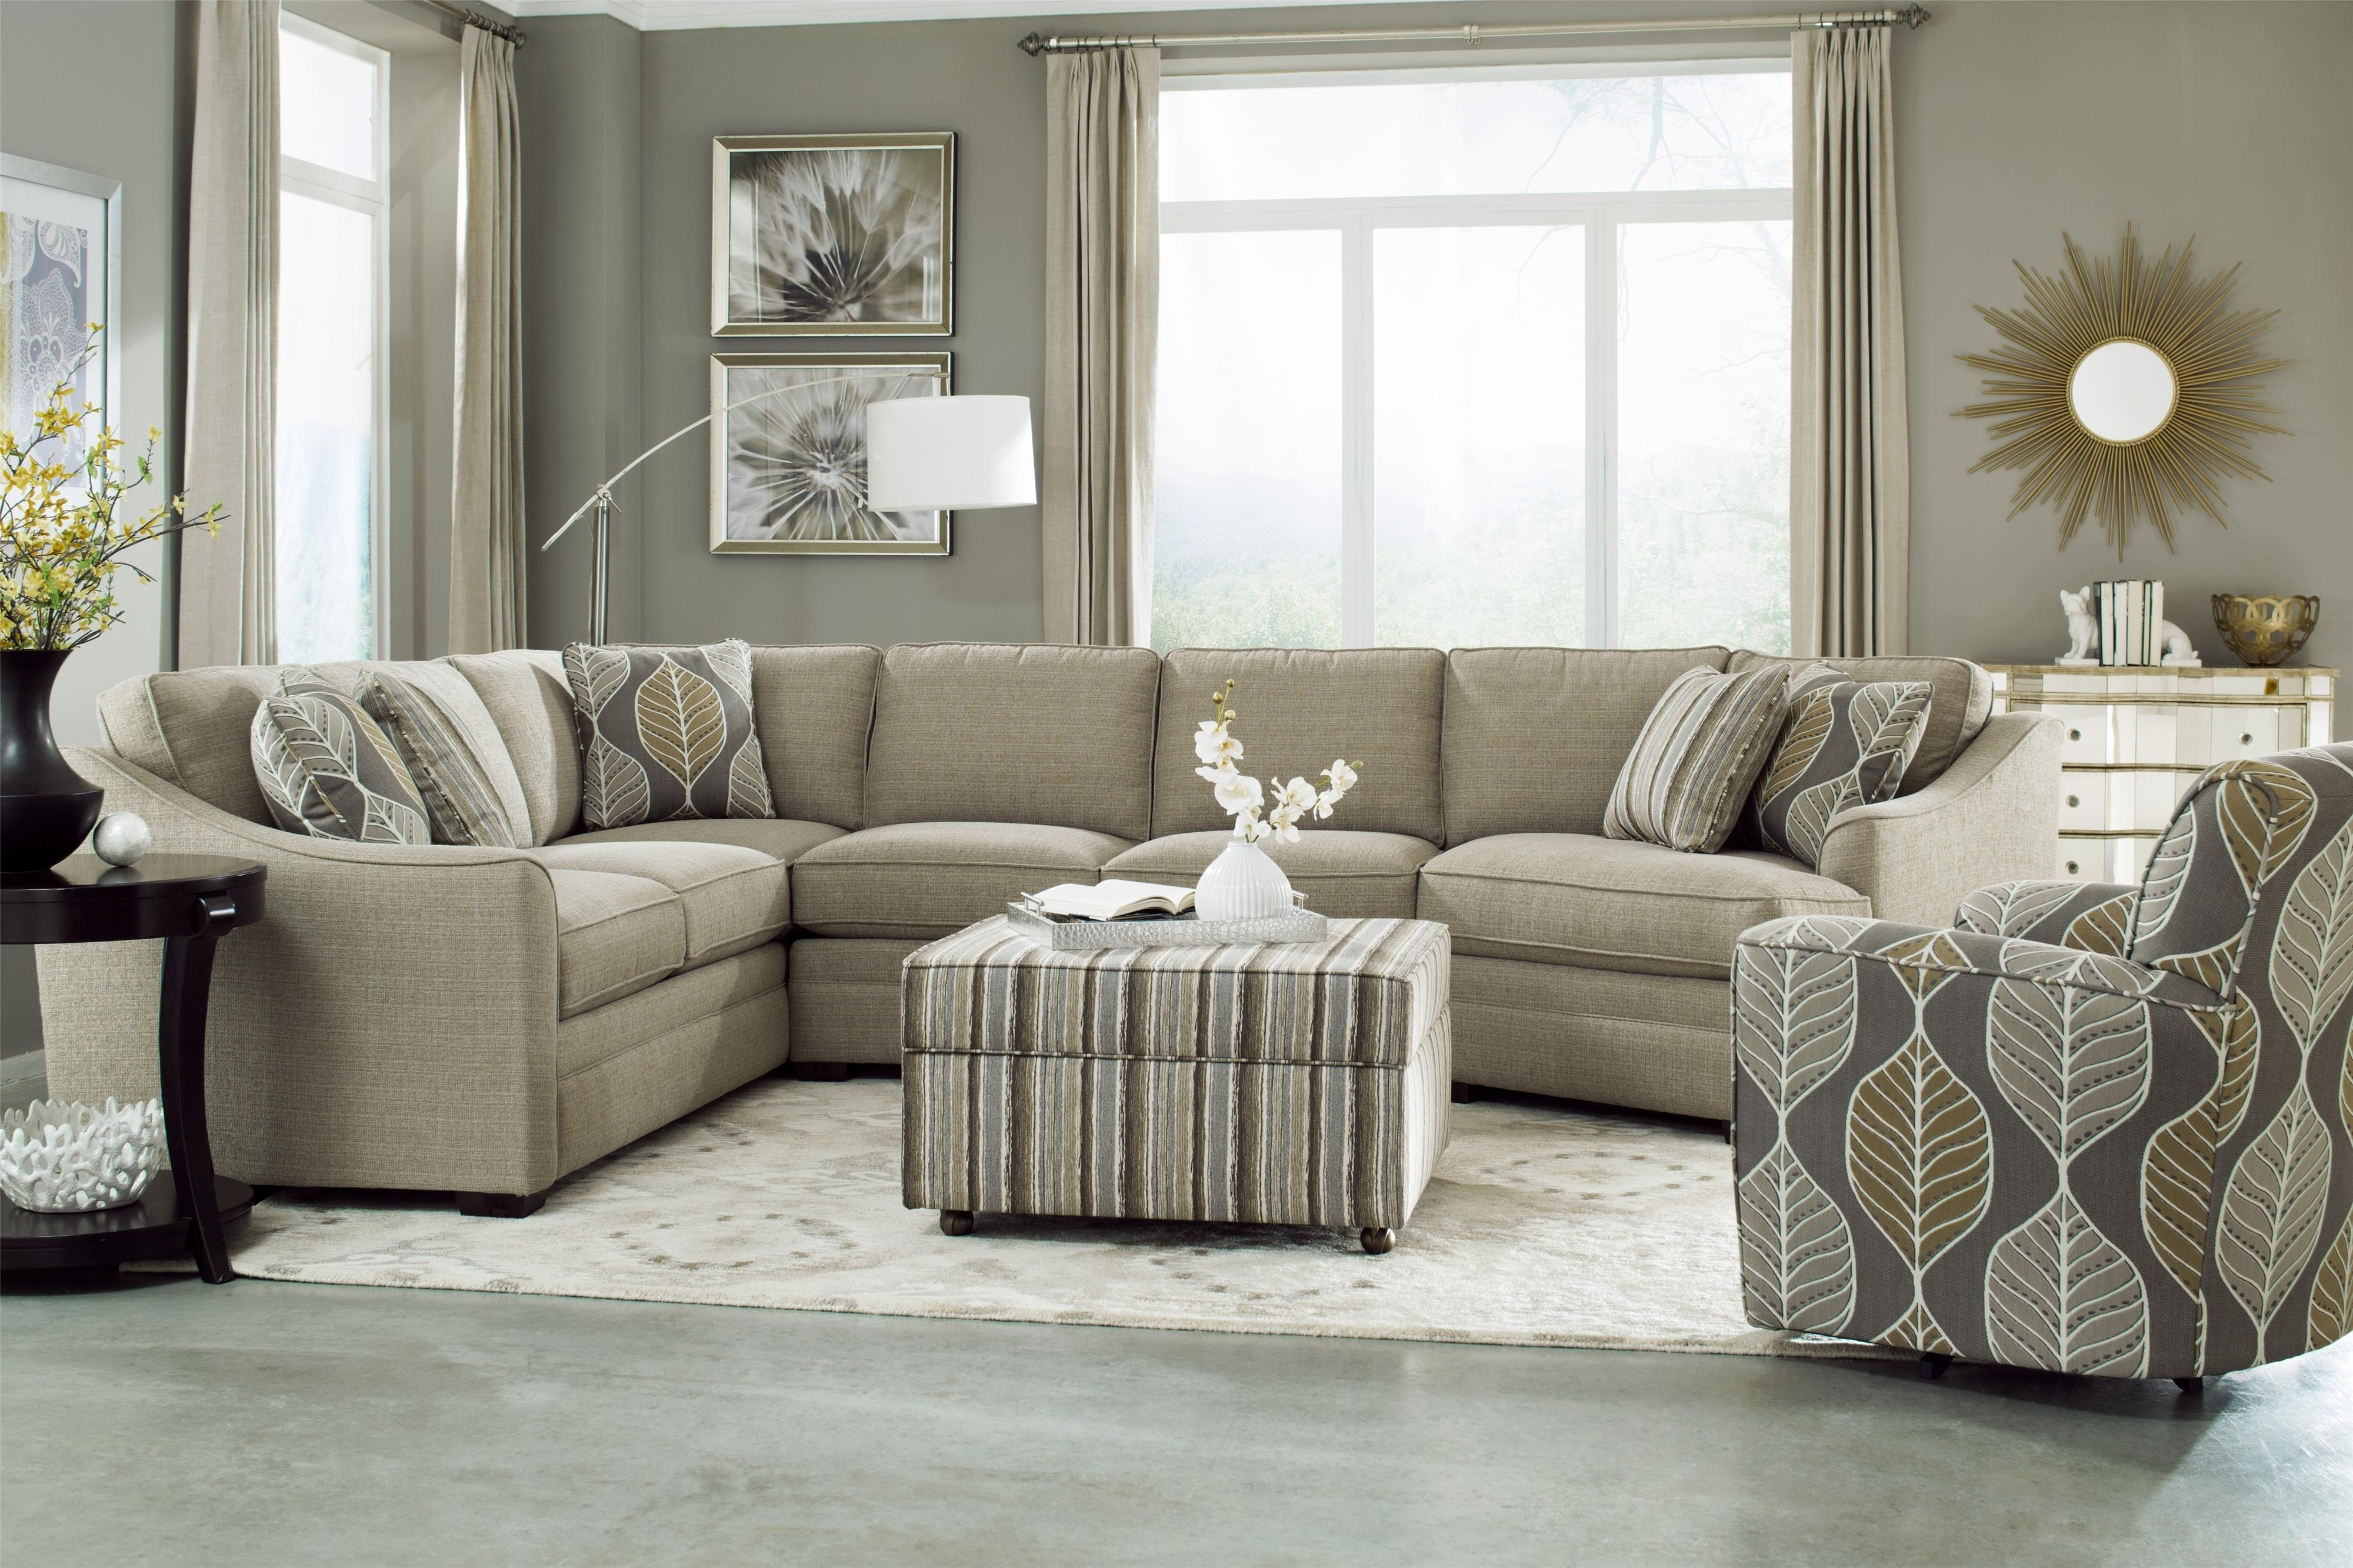 Hickory Craft F9 Custom Collection <B>Customizable</b> 3 Piece Within Adeline 3 Piece Sectionals (View 14 of 25)